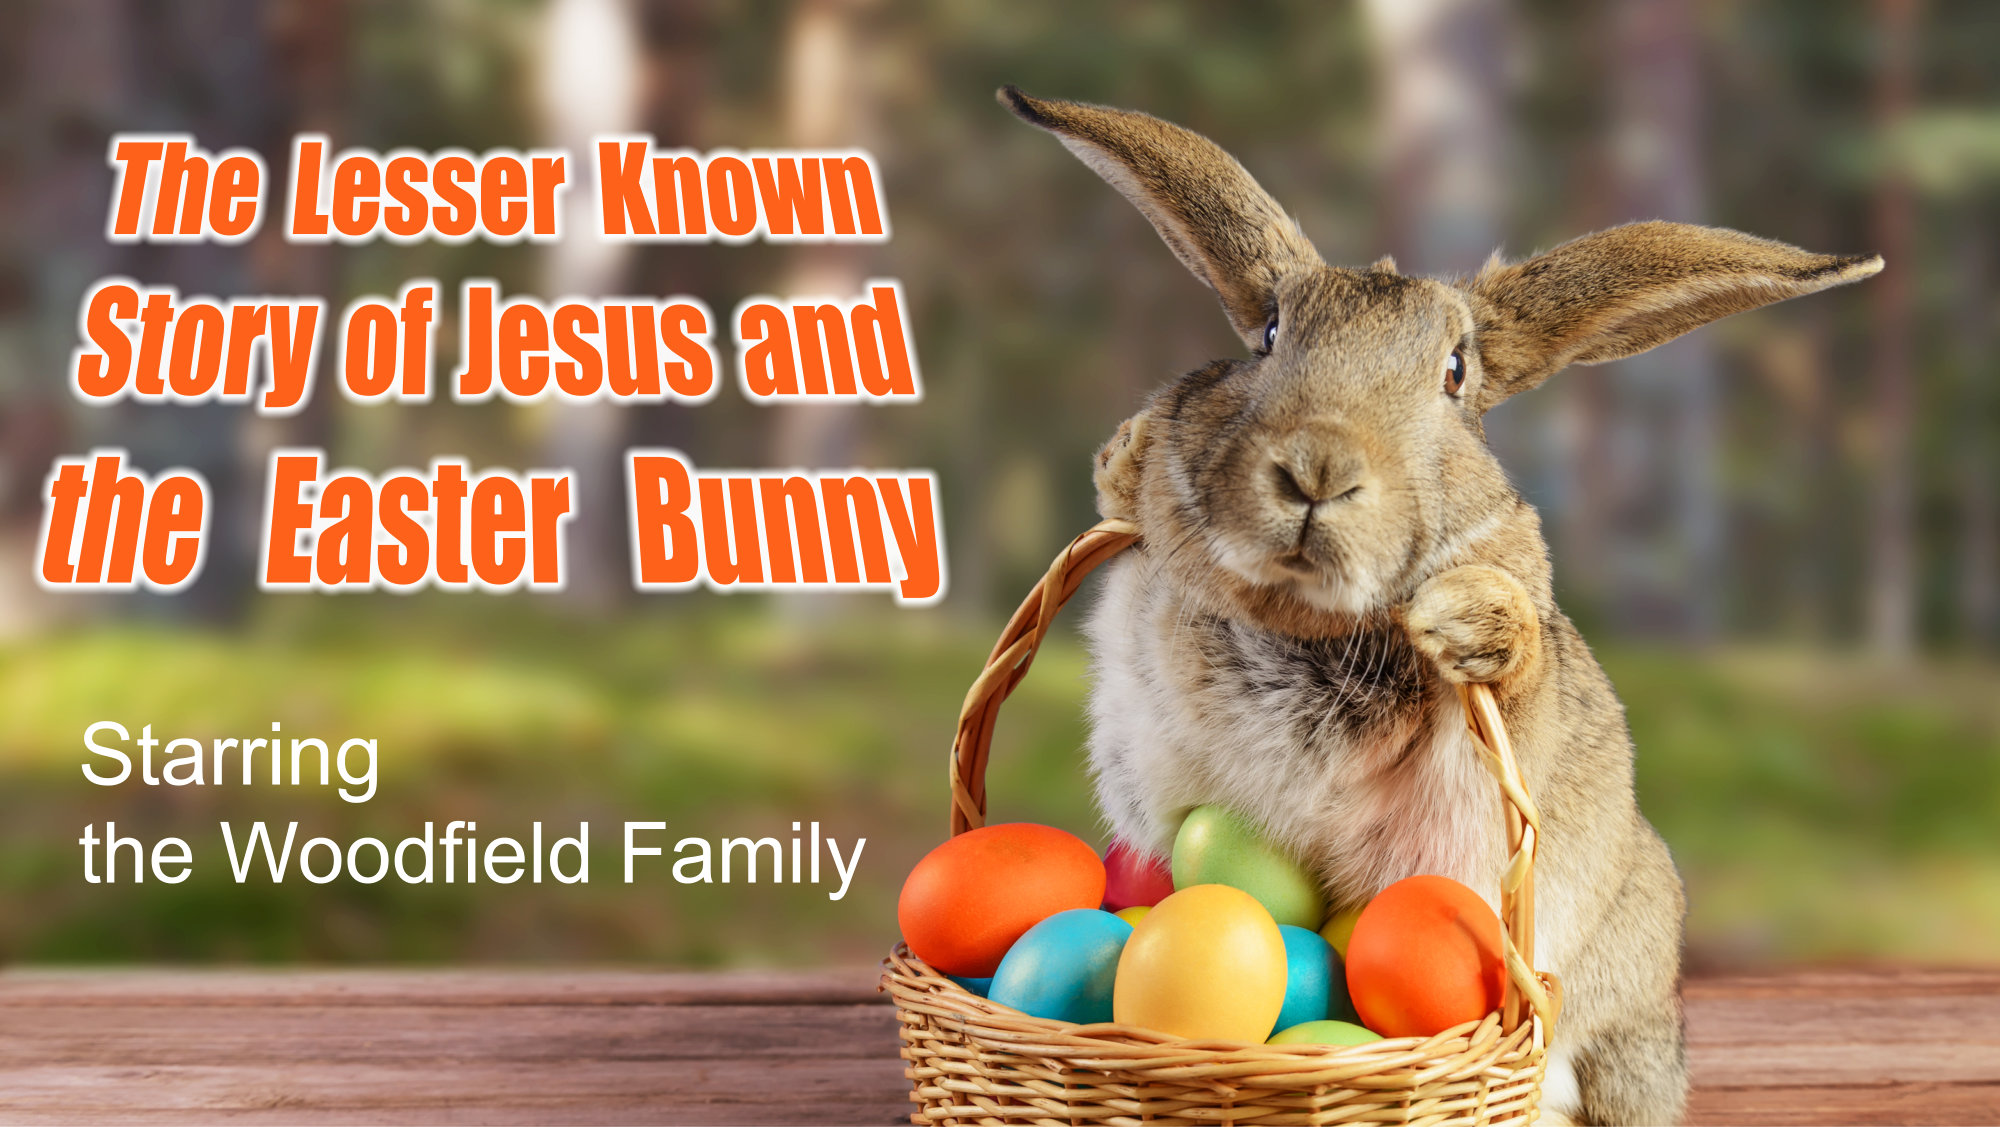 The Lesser Known Story of Jesus and the Easter Bunny